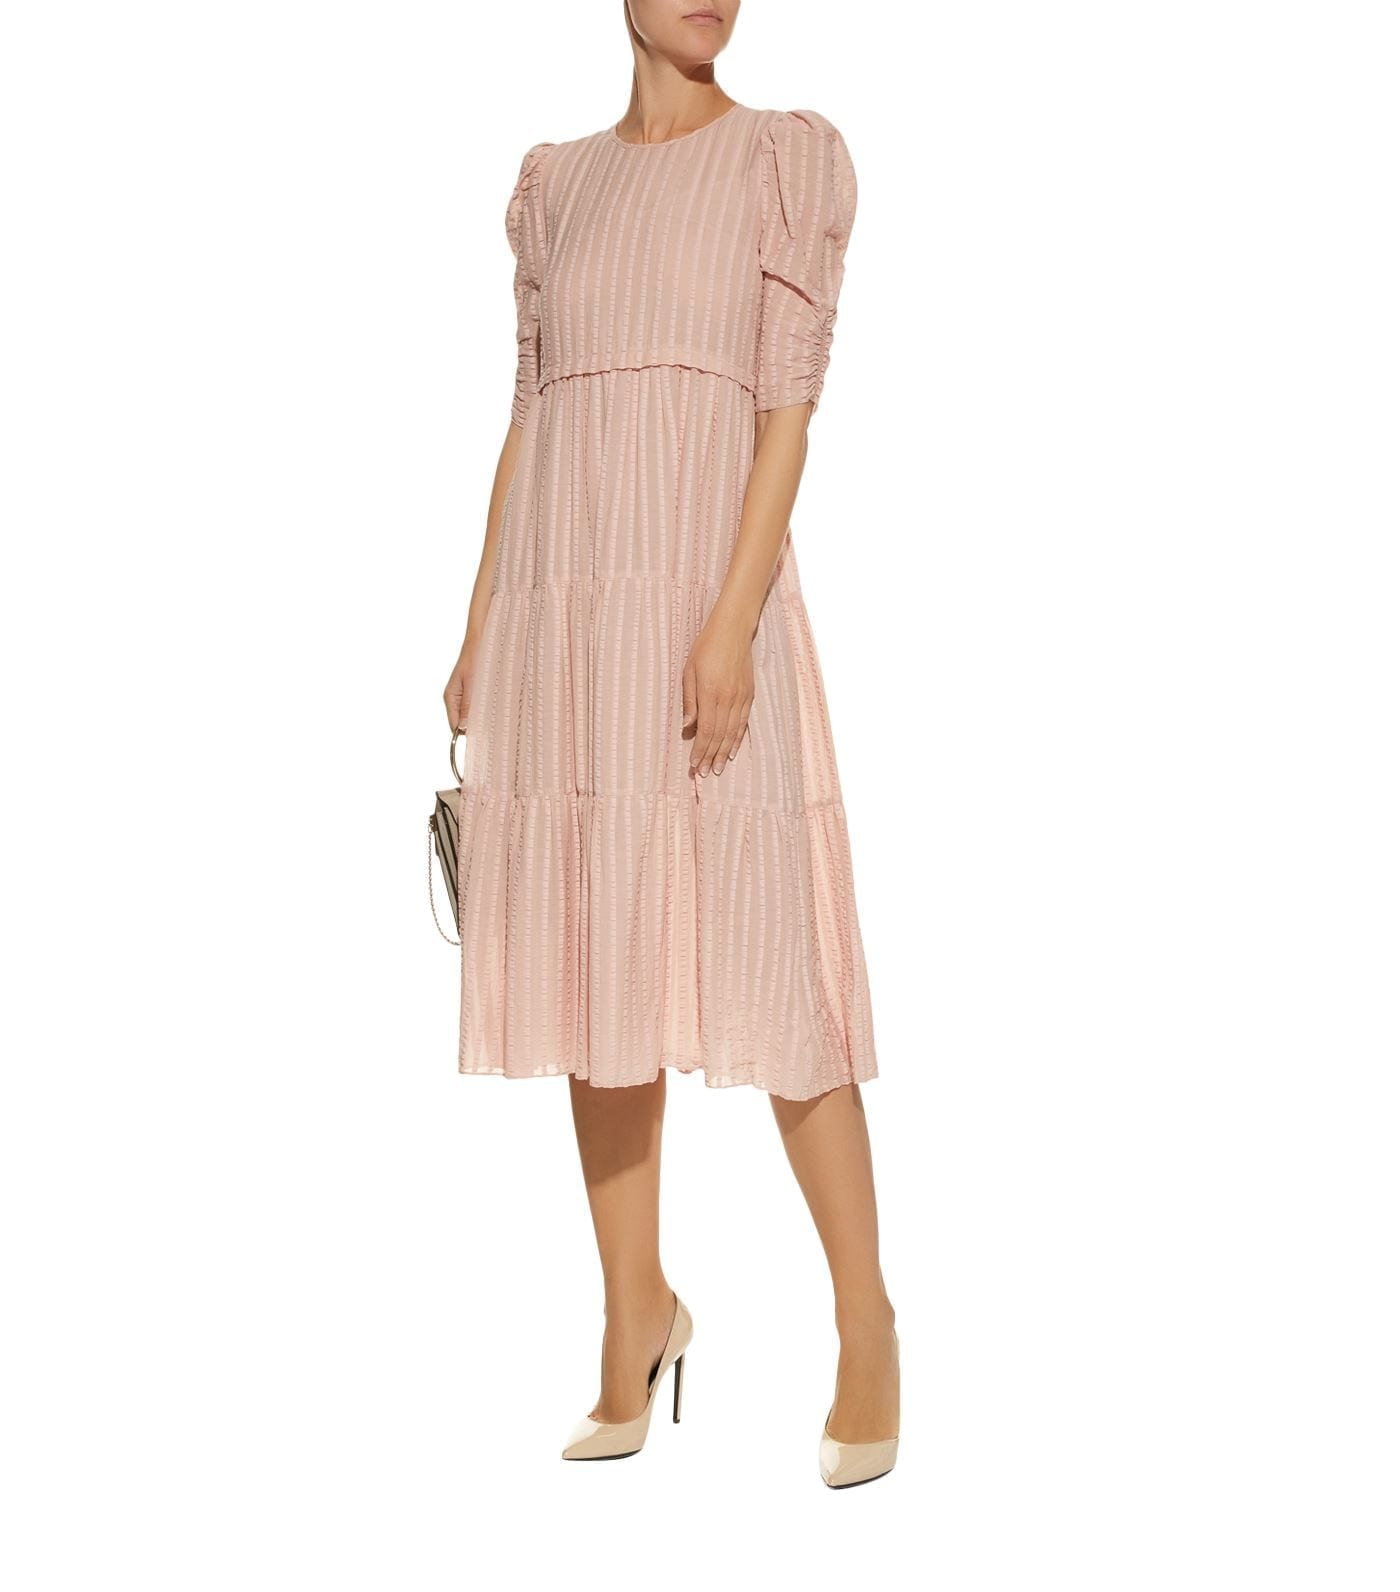 SEE BY CHLOÉ Cotton Voile Puff Sleeve Pink Dress